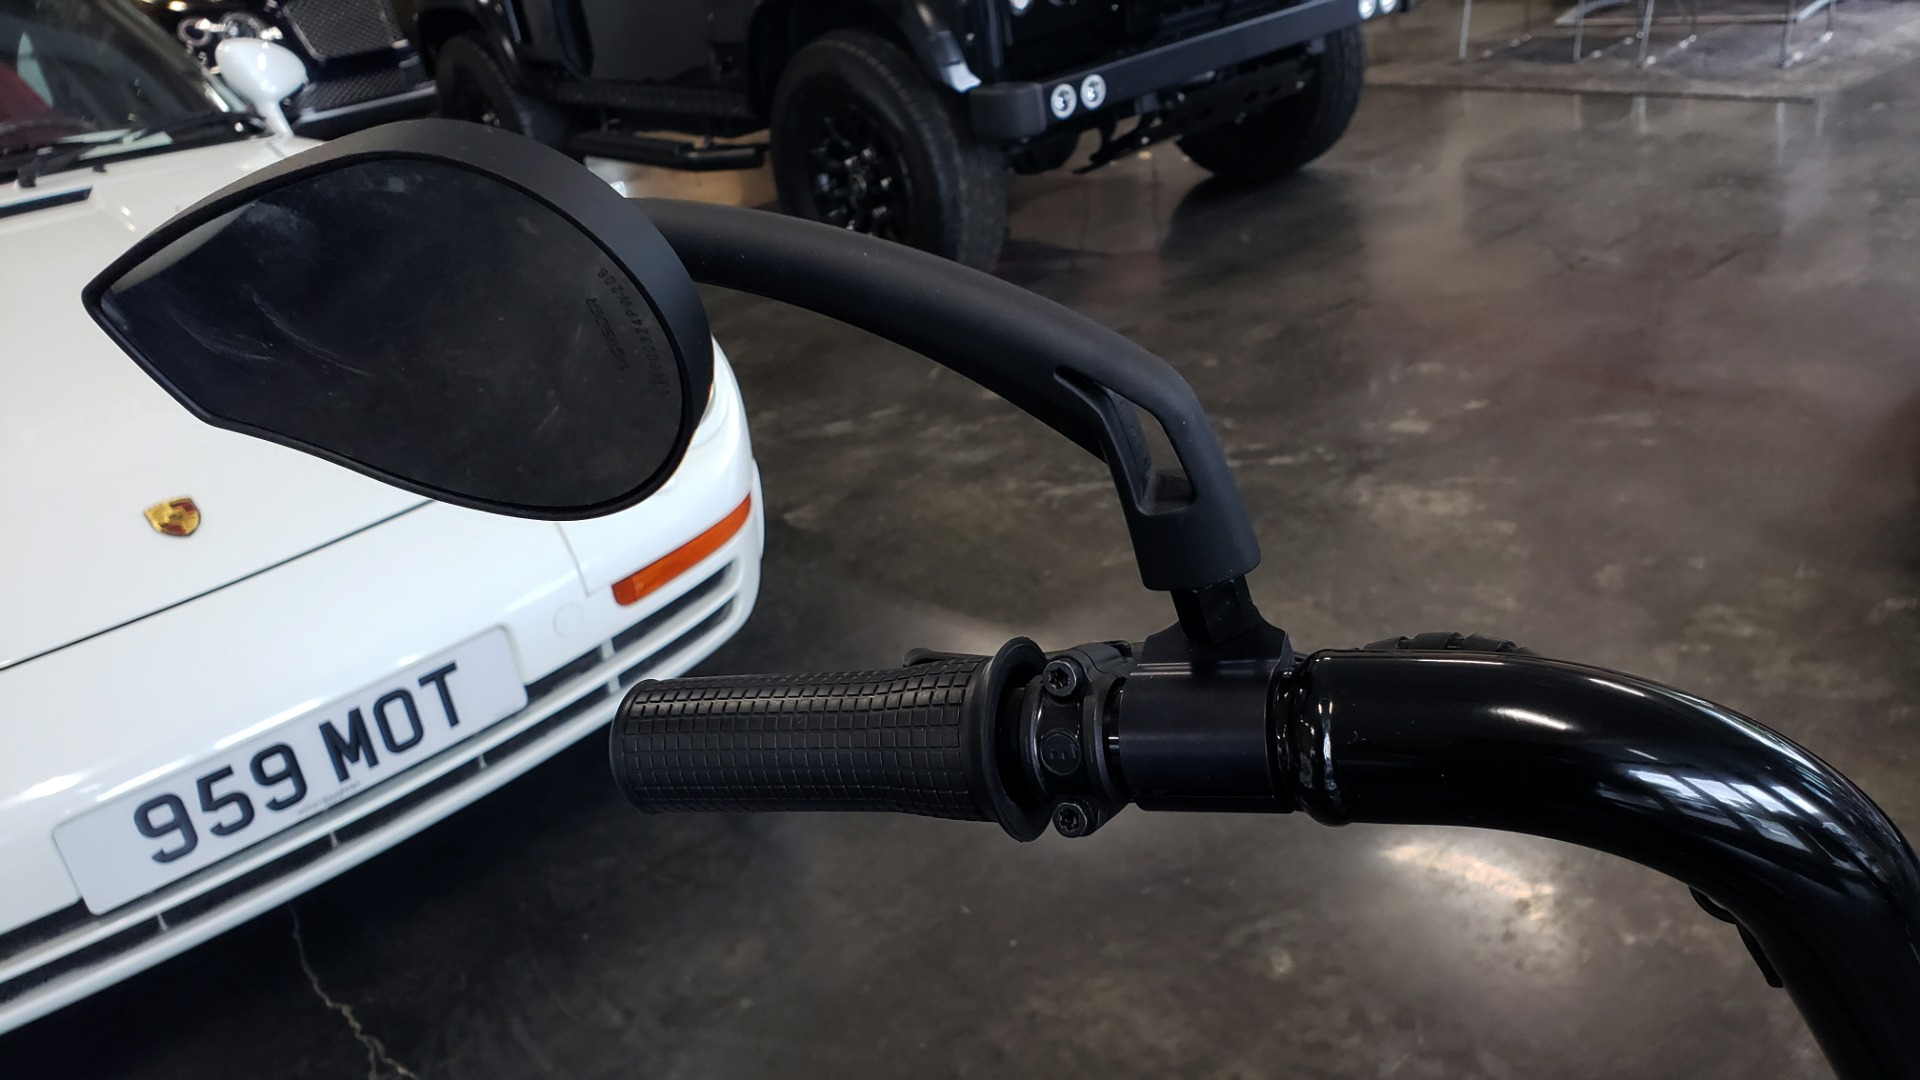 Used 2018 SCROOSER ELECTRIC SCOOTER SELF BALANCED / PRIME BLUE / 15.5 MPH / 34 MI RANGE for sale $1,799 at Formula Imports in Charlotte NC 28227 11